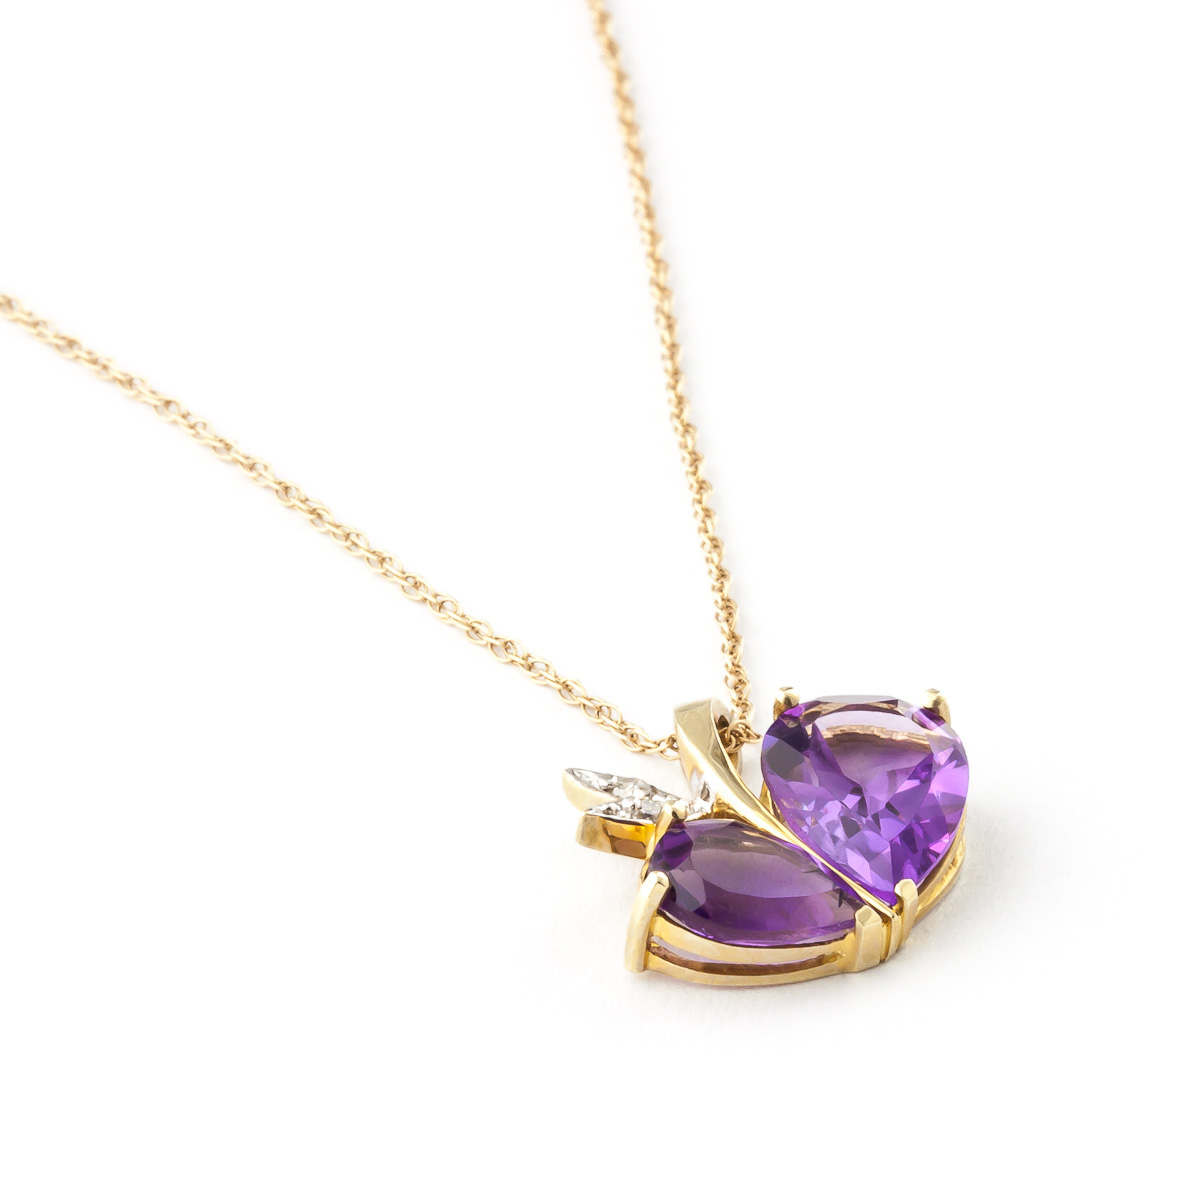 Amethyst & Diamond Eternal Pendant Necklace in 9ct Gold